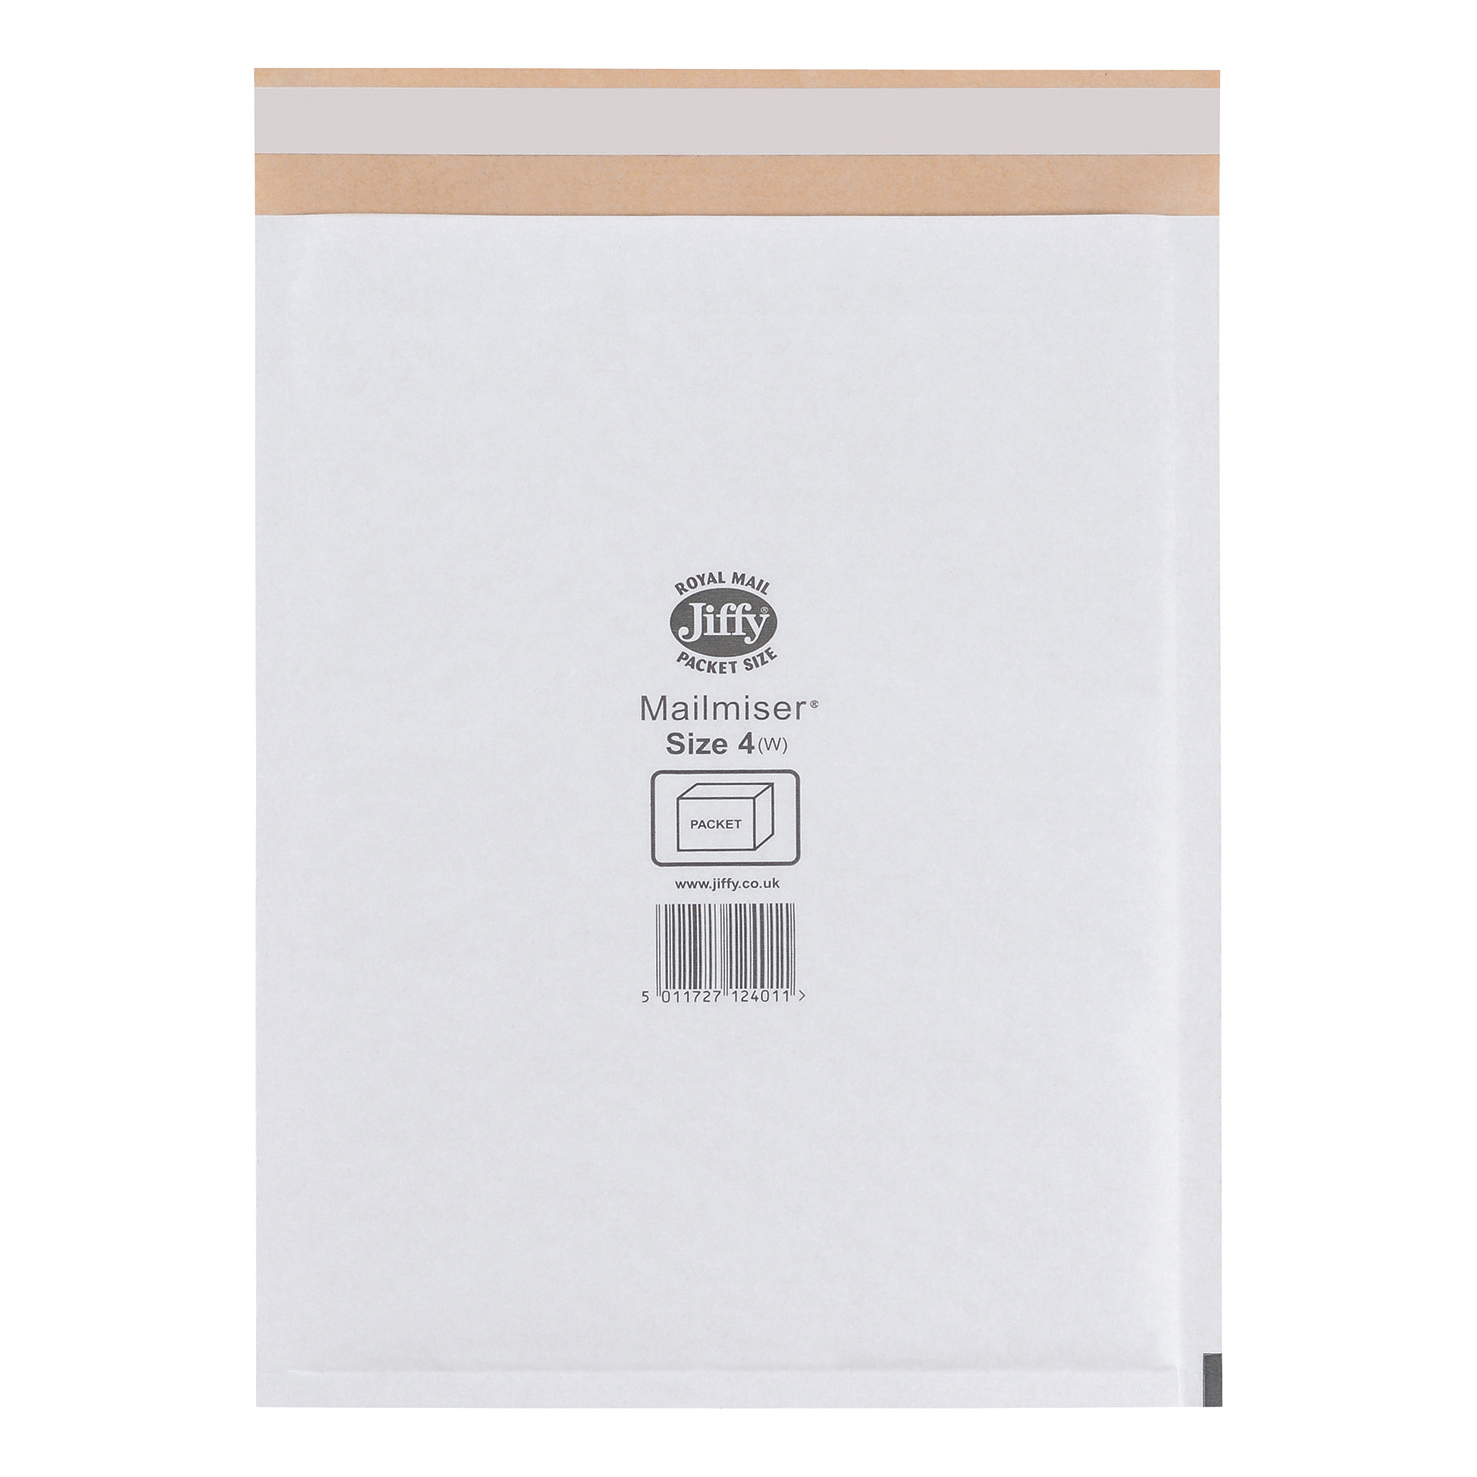 Padded Bags & Envelopes Jiffy Mailmiser Protective Envelopes Bubble-lined Size 4 P&S 240x320mm White Ref JMM-WH-4 Pack 50